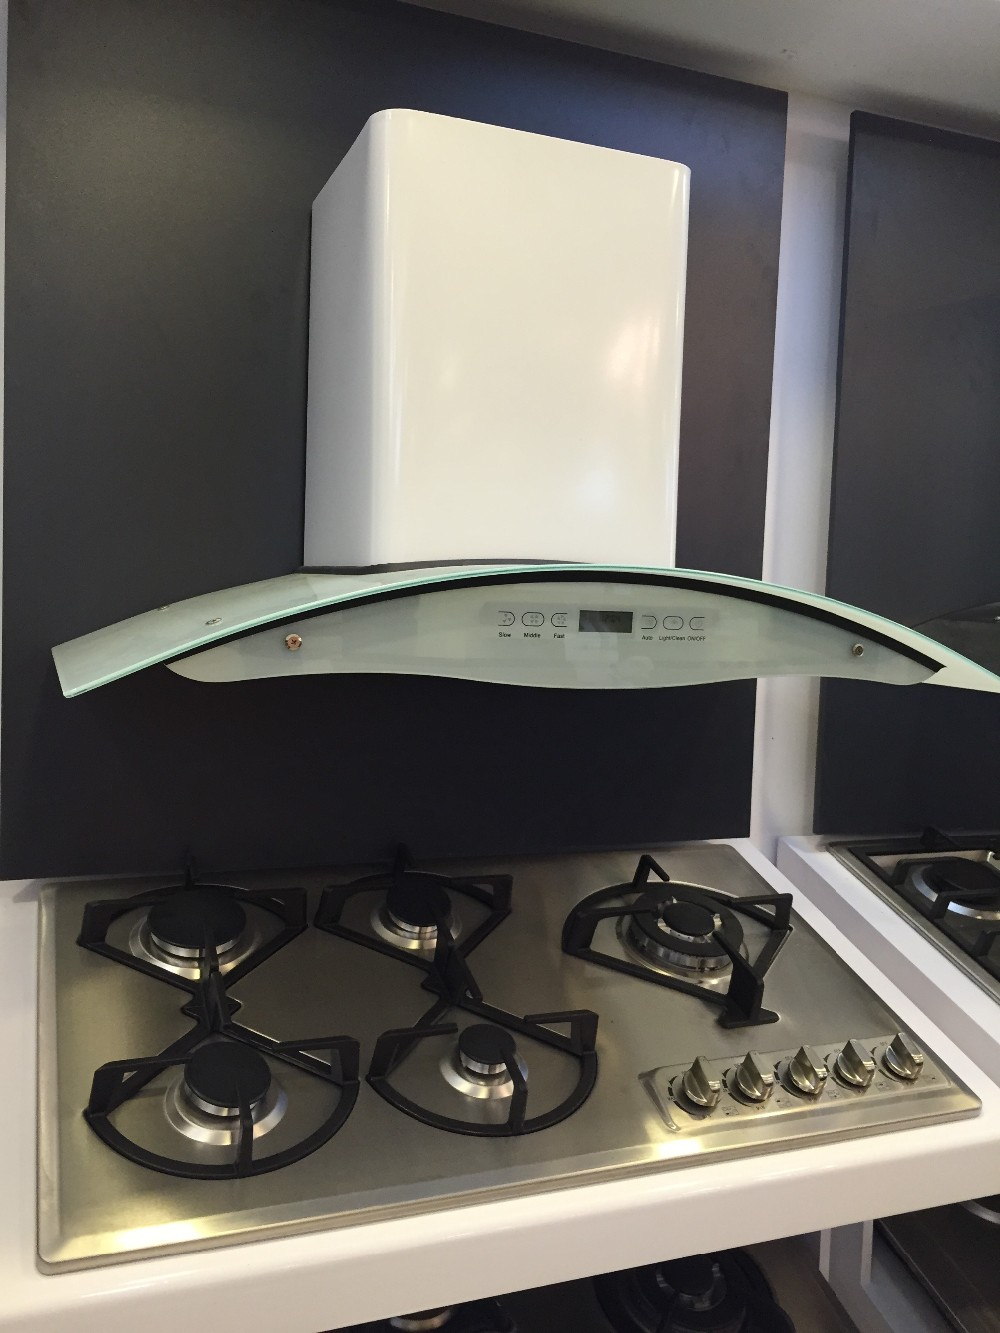 2016 Ss Filter Big Oil Cup Chinese Range Hood/cooker Hood